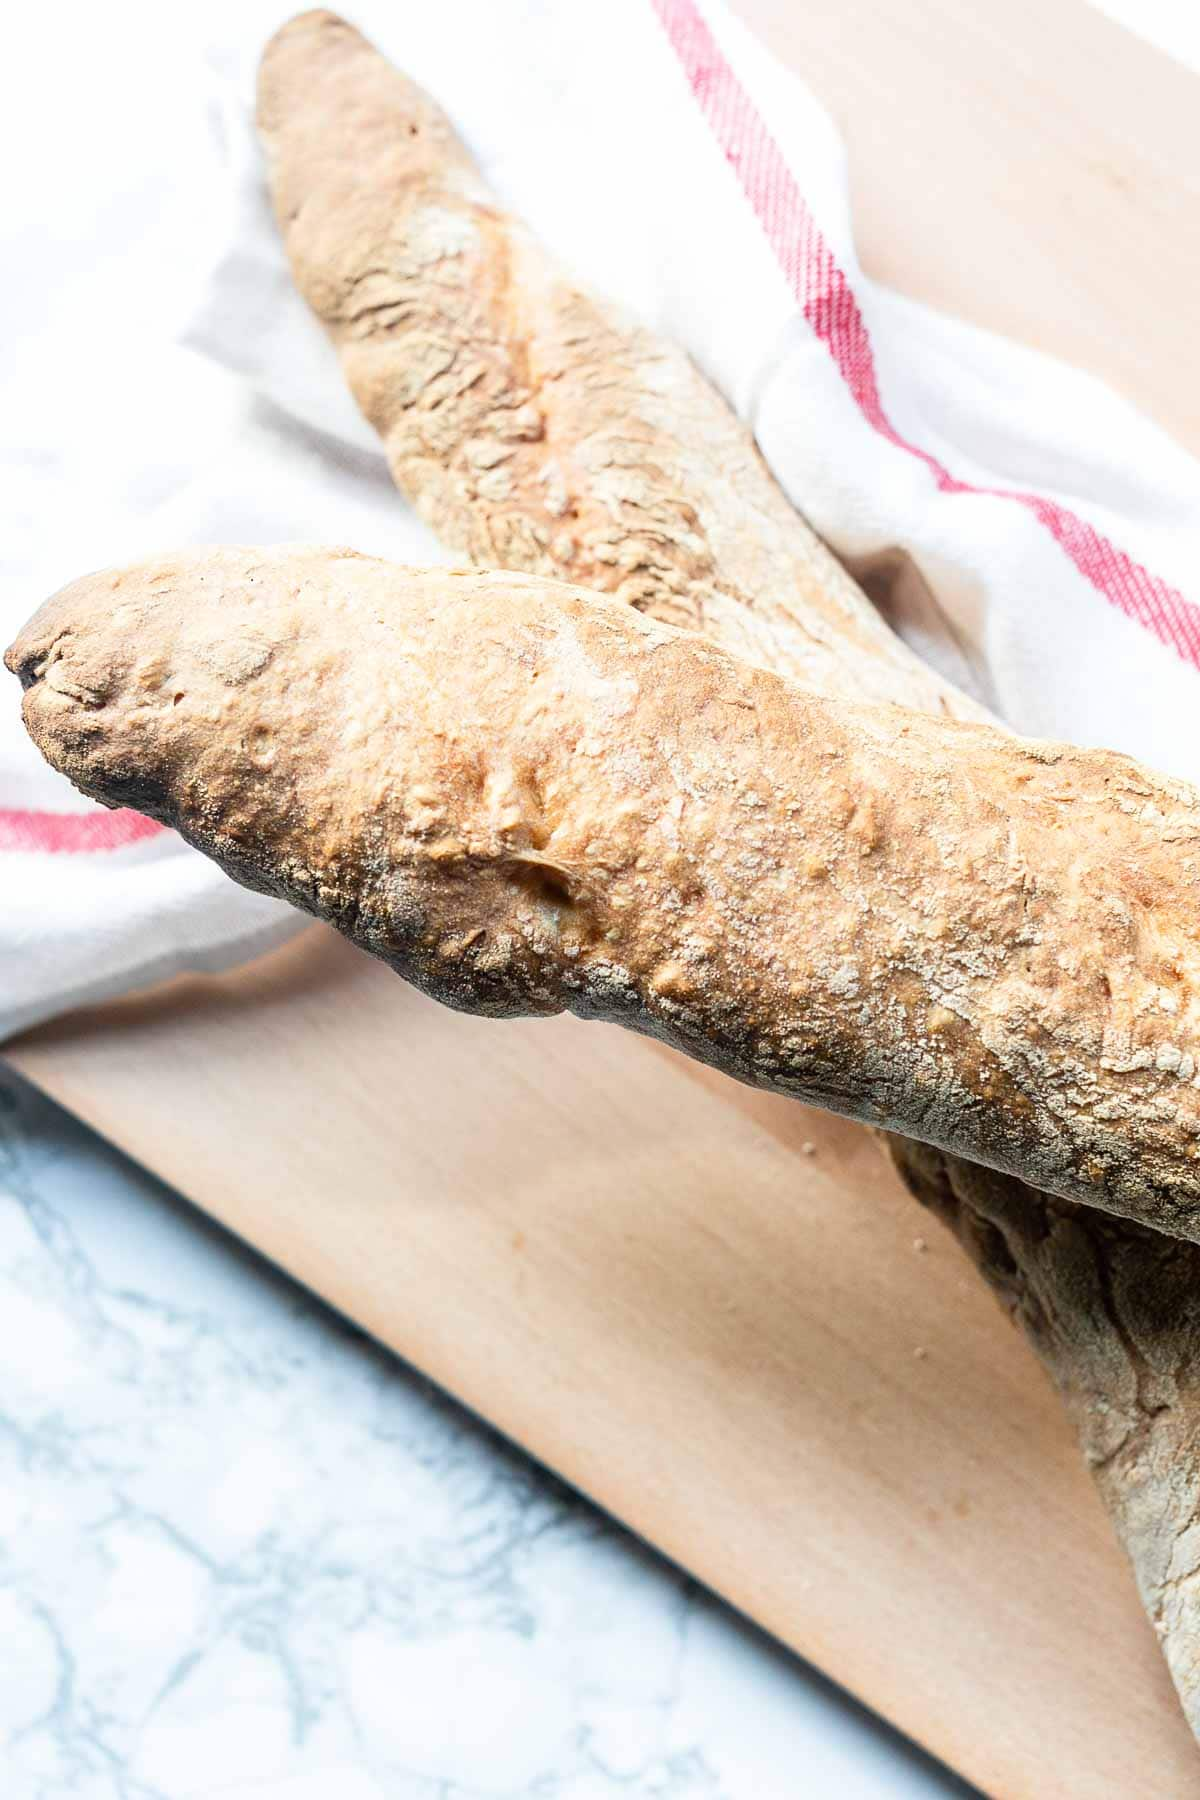 Looking for a homemade crusty French baguette? Take a look at the French baguette recipe. A handful of ingredients and easy to make. Visit fastfoodbistro.com for the full recipe. #fastfoodbistro #frenchbaguette #baguette #frenchbaguetterecipe #bread #breadrecipe